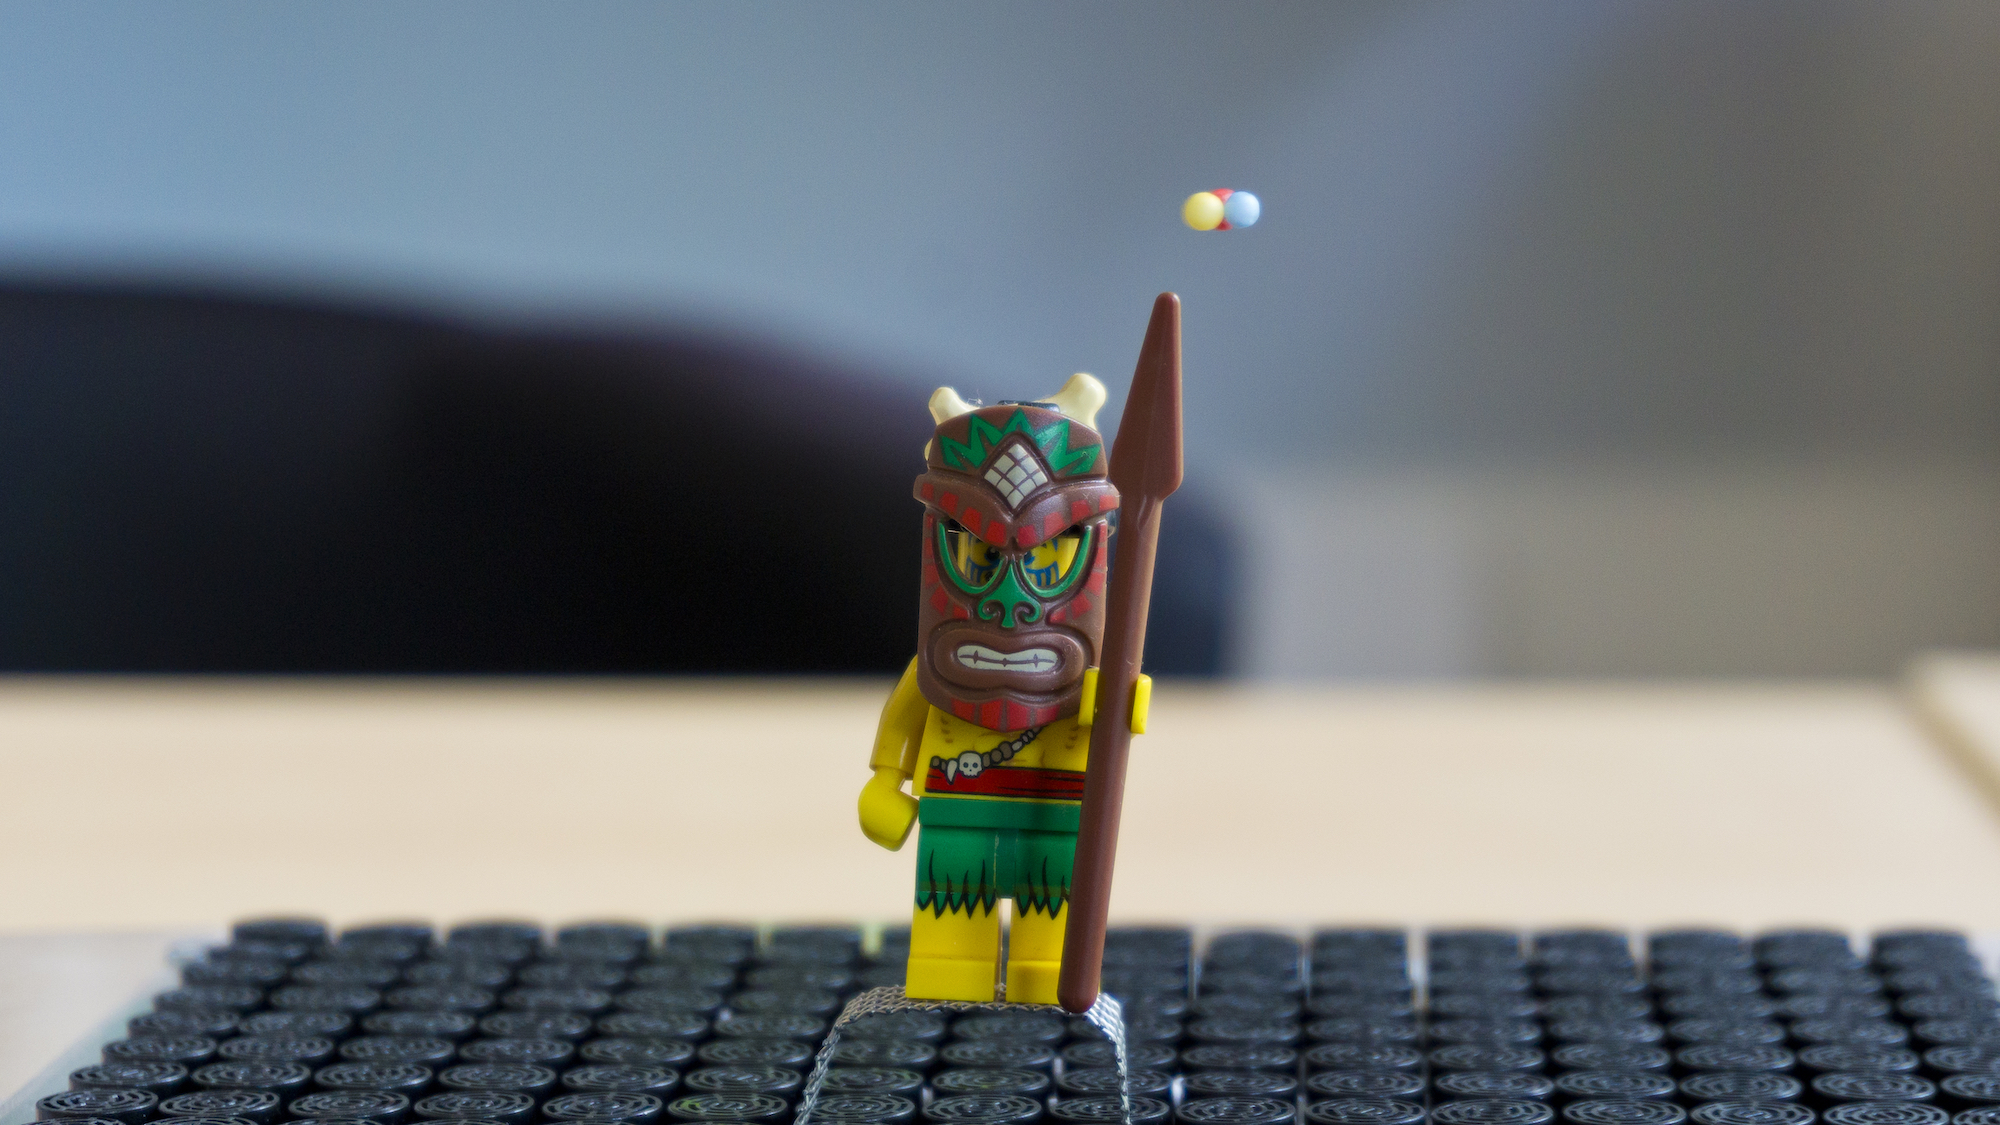 A cluster of polystyrene beads levitating above a Lego Minifigure. The miniature figure is holding a magical staff, so the beads create the appearance of magical forces being emitted by the staff.